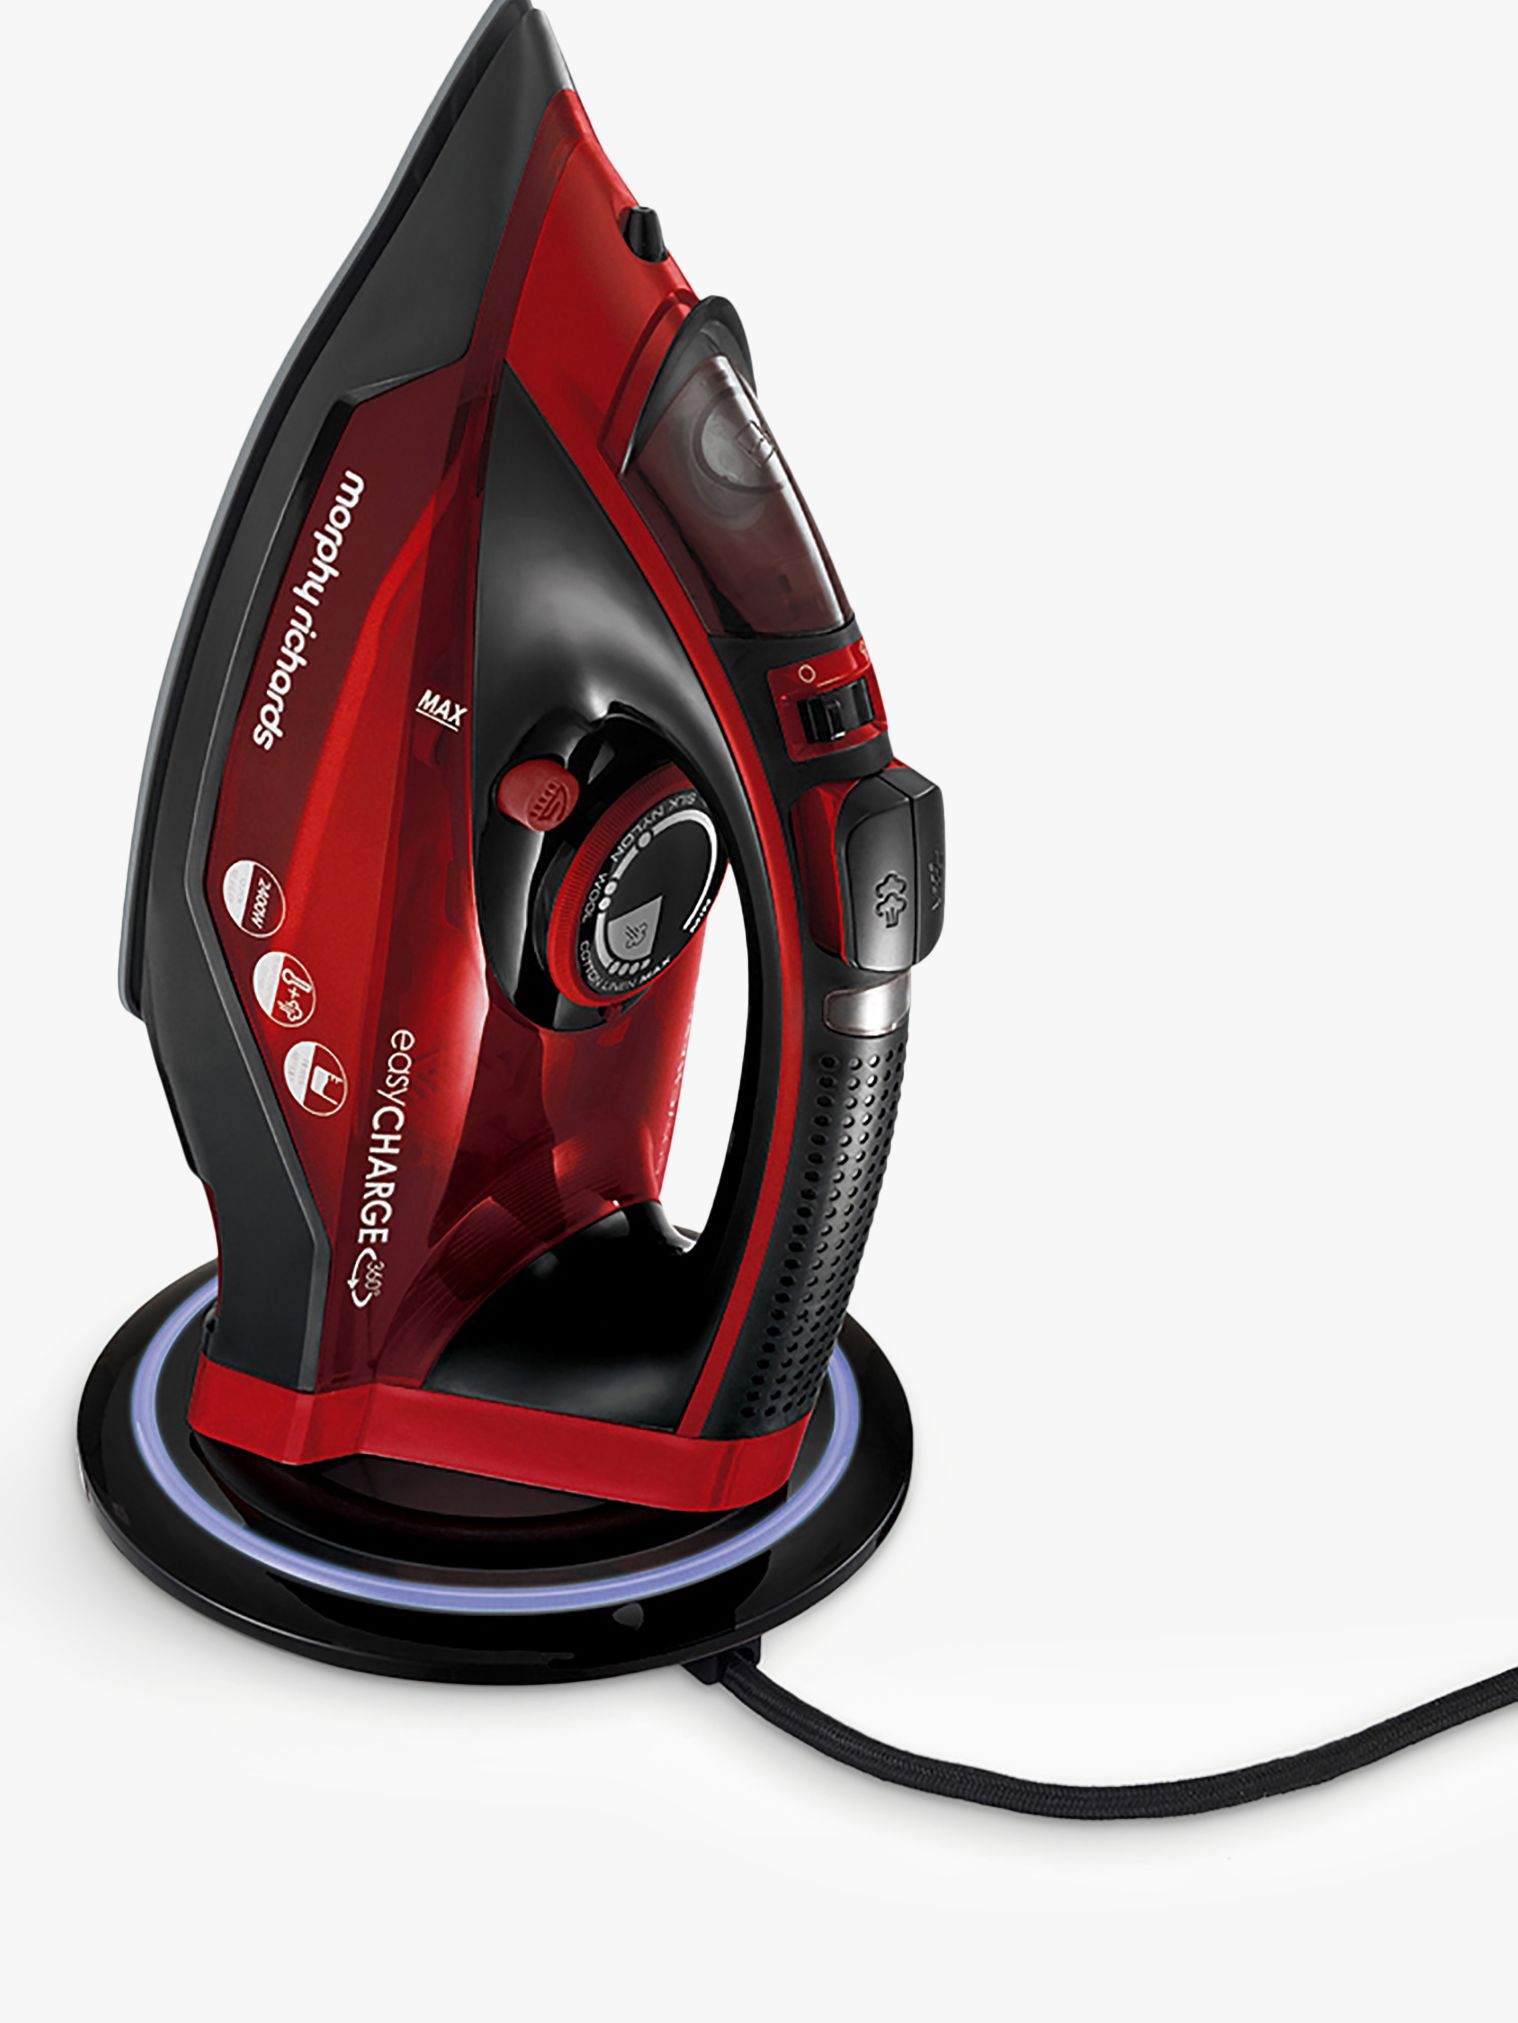 Morphy Richards Morphy Richards 303250 EasyCharge Cordless Iron, Red